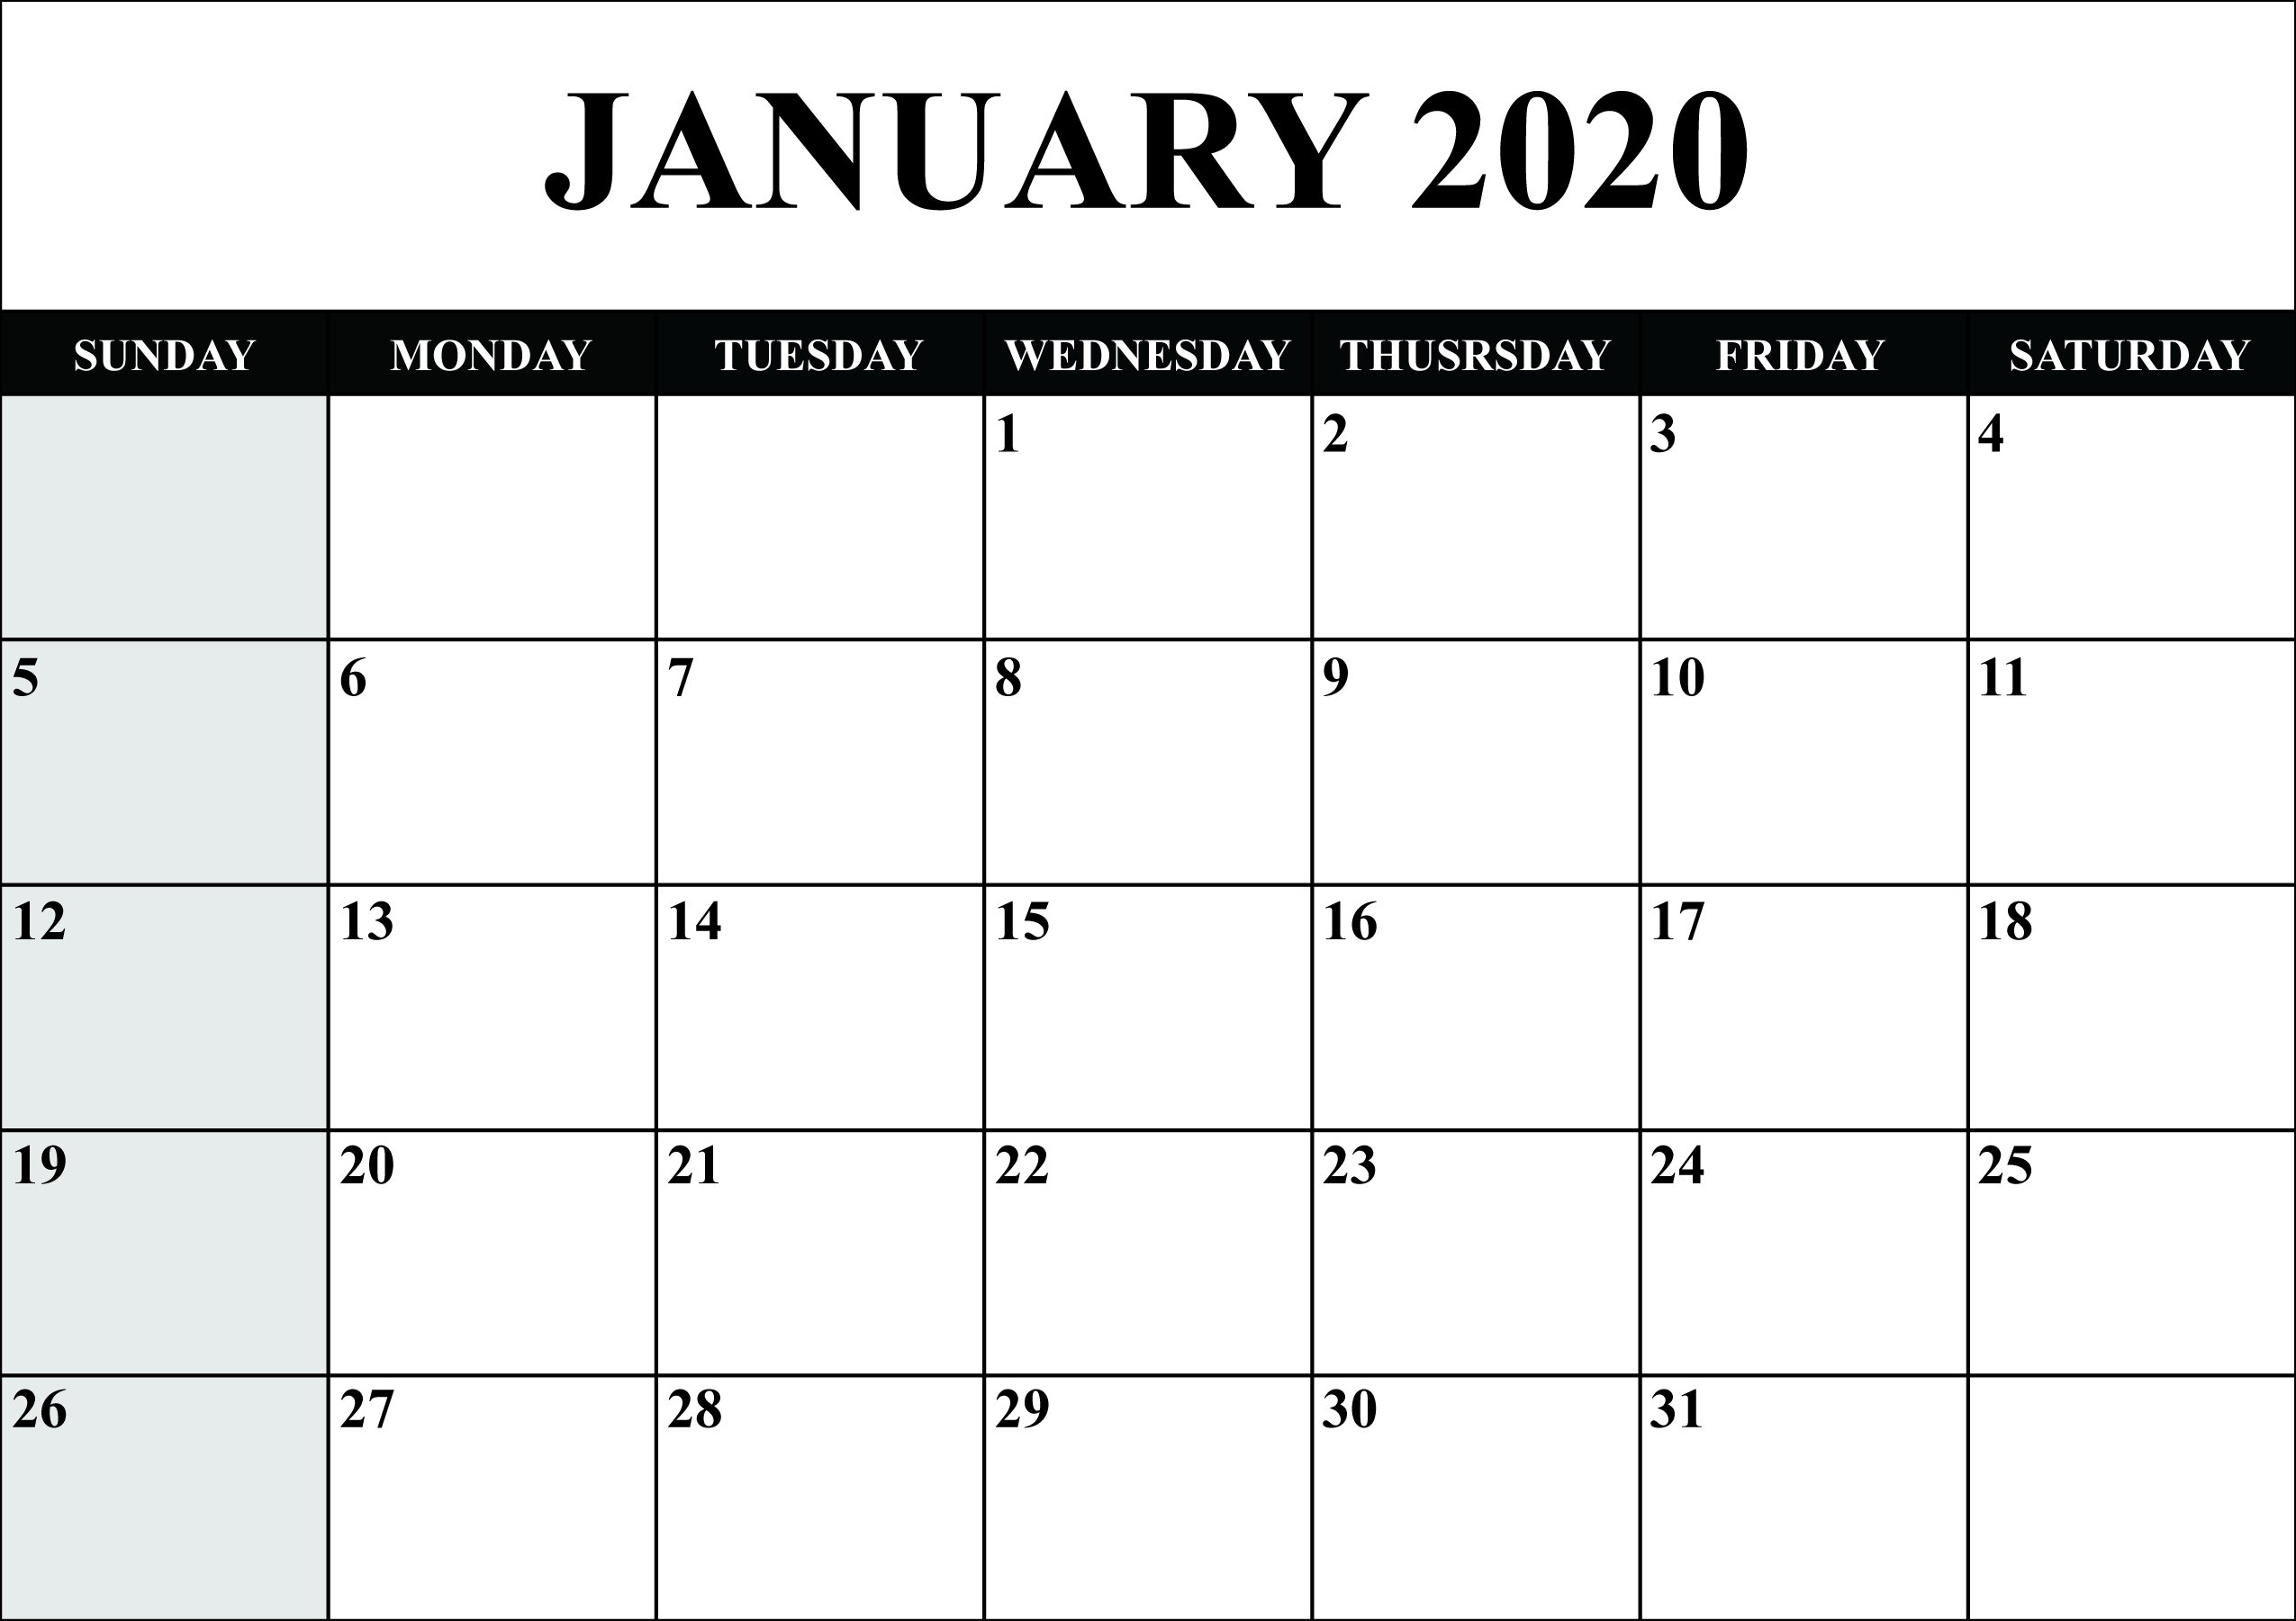 Free Blank January 2020 Calendar Printable In Pdf, Word-January 2020 Calendar Month